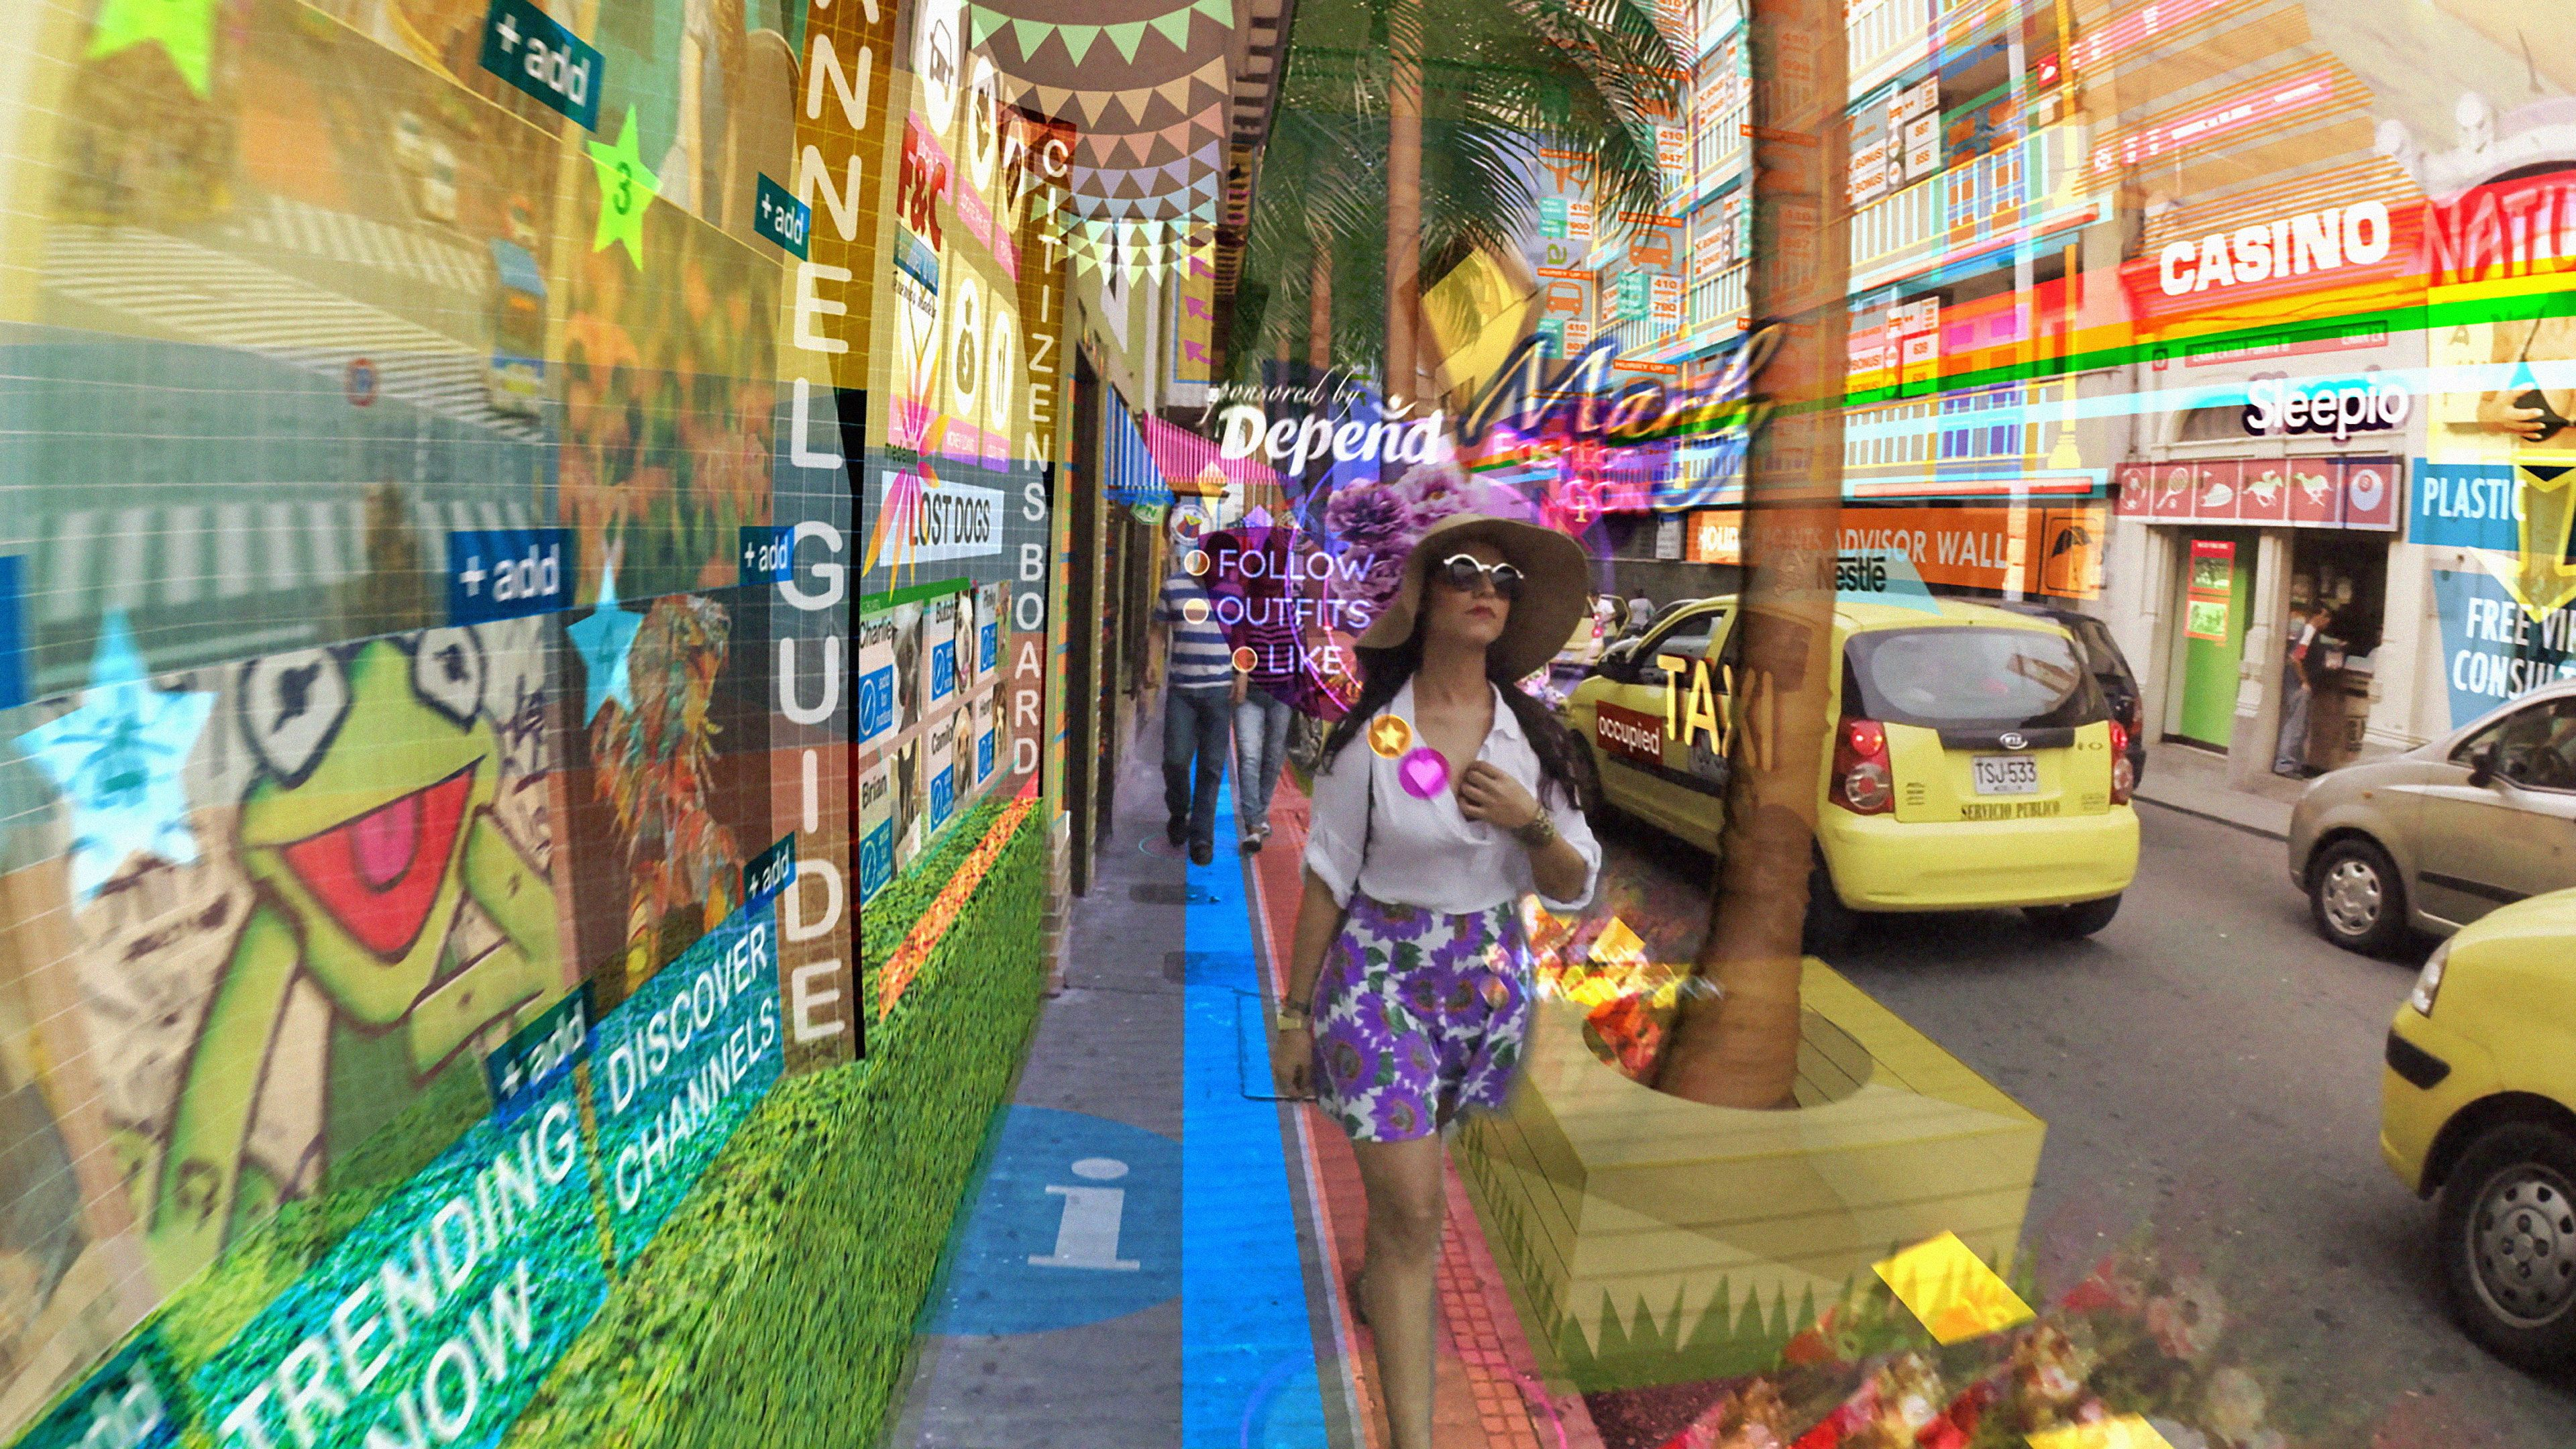 Pin by Patrick Ewing on Getaway Augmented reality